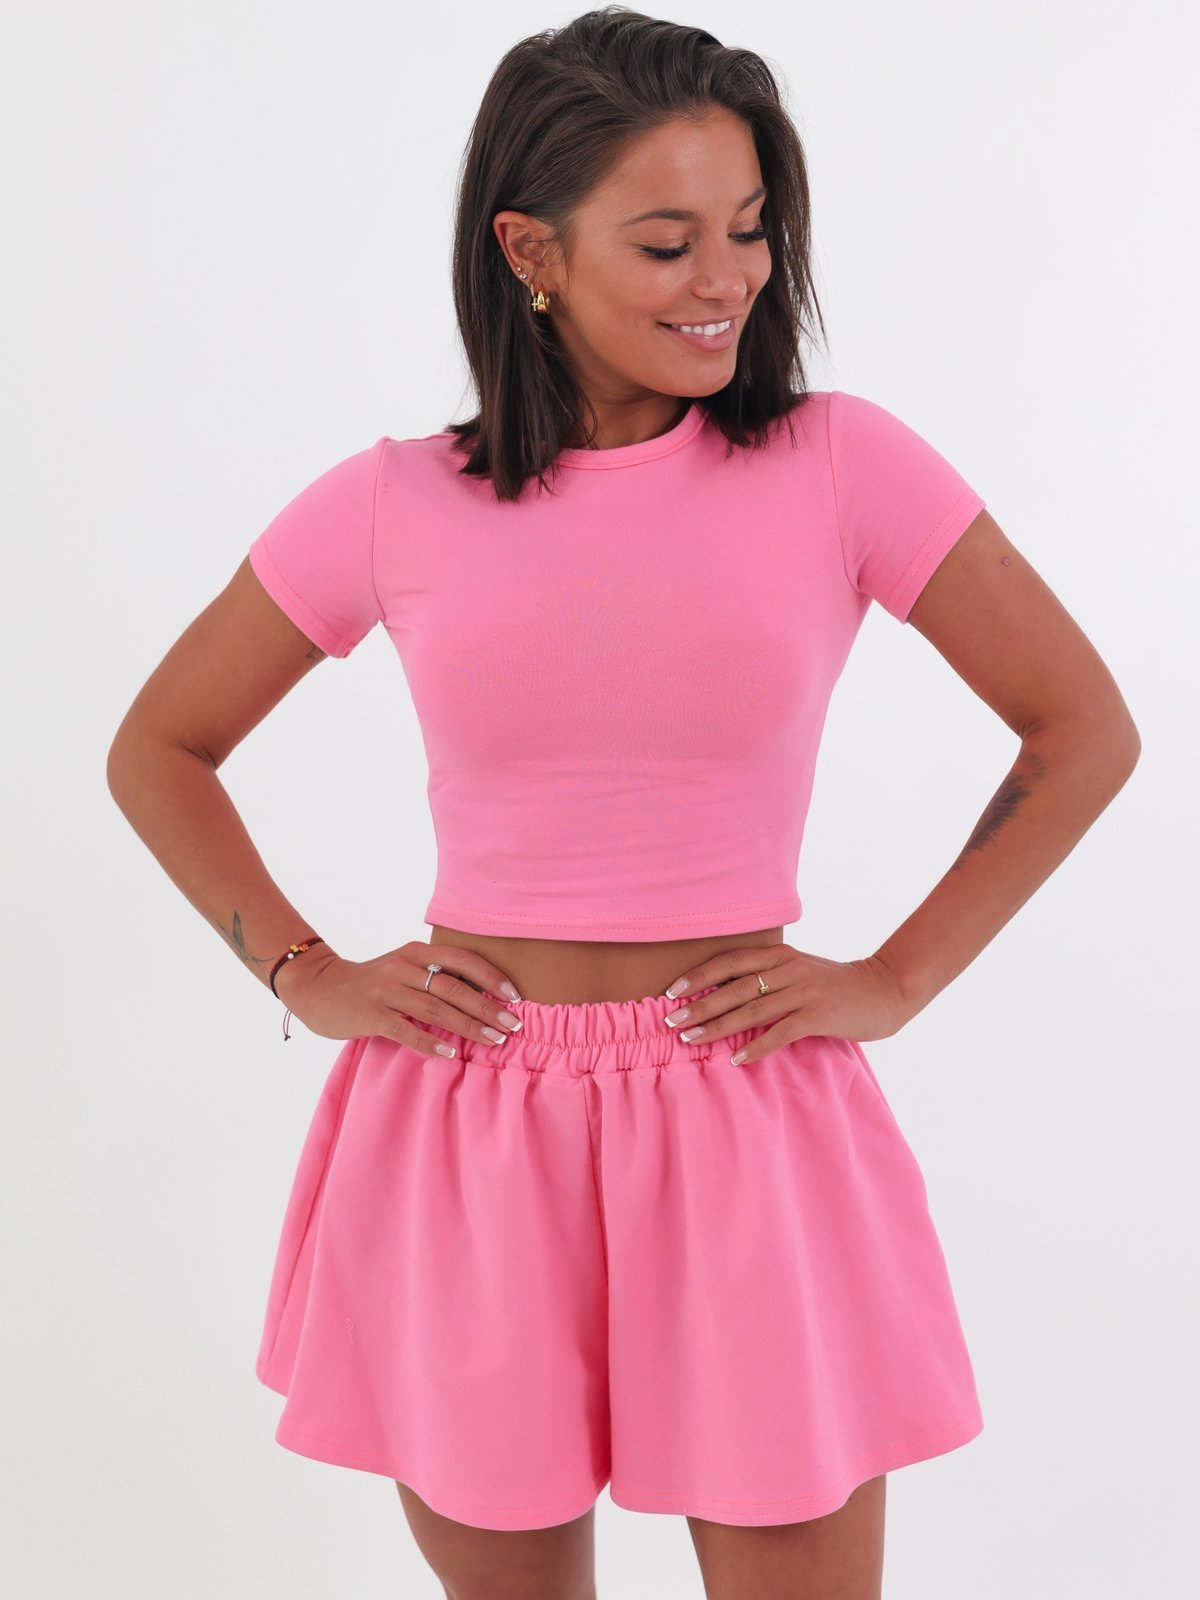 Basic Crop Top and Shorts Set - CANDY PINK - B64